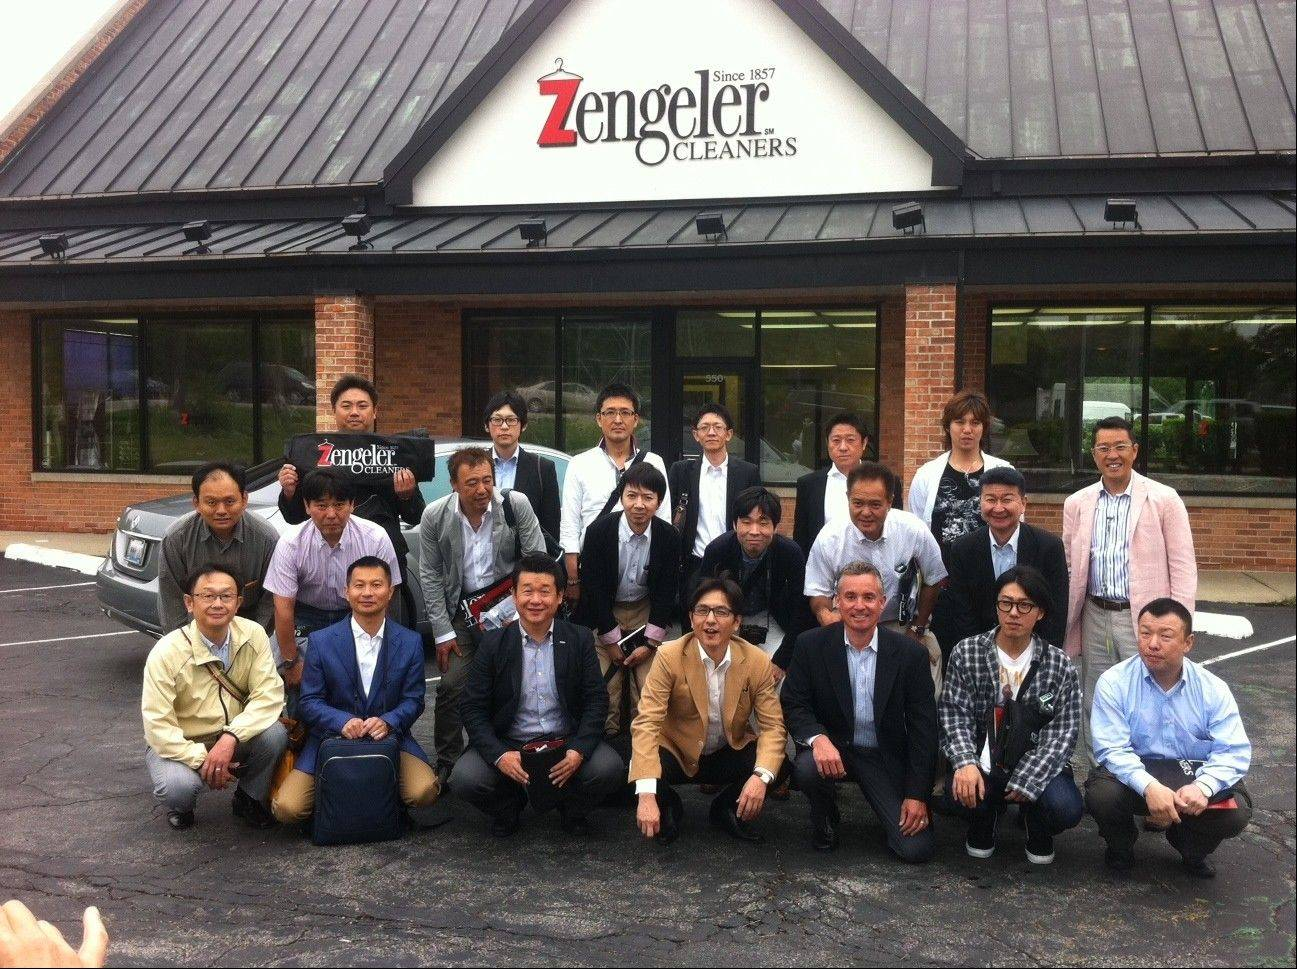 Tom Zengeler, front row, third from left, hosts a delegation of dry cleaning operators from Japan is below.